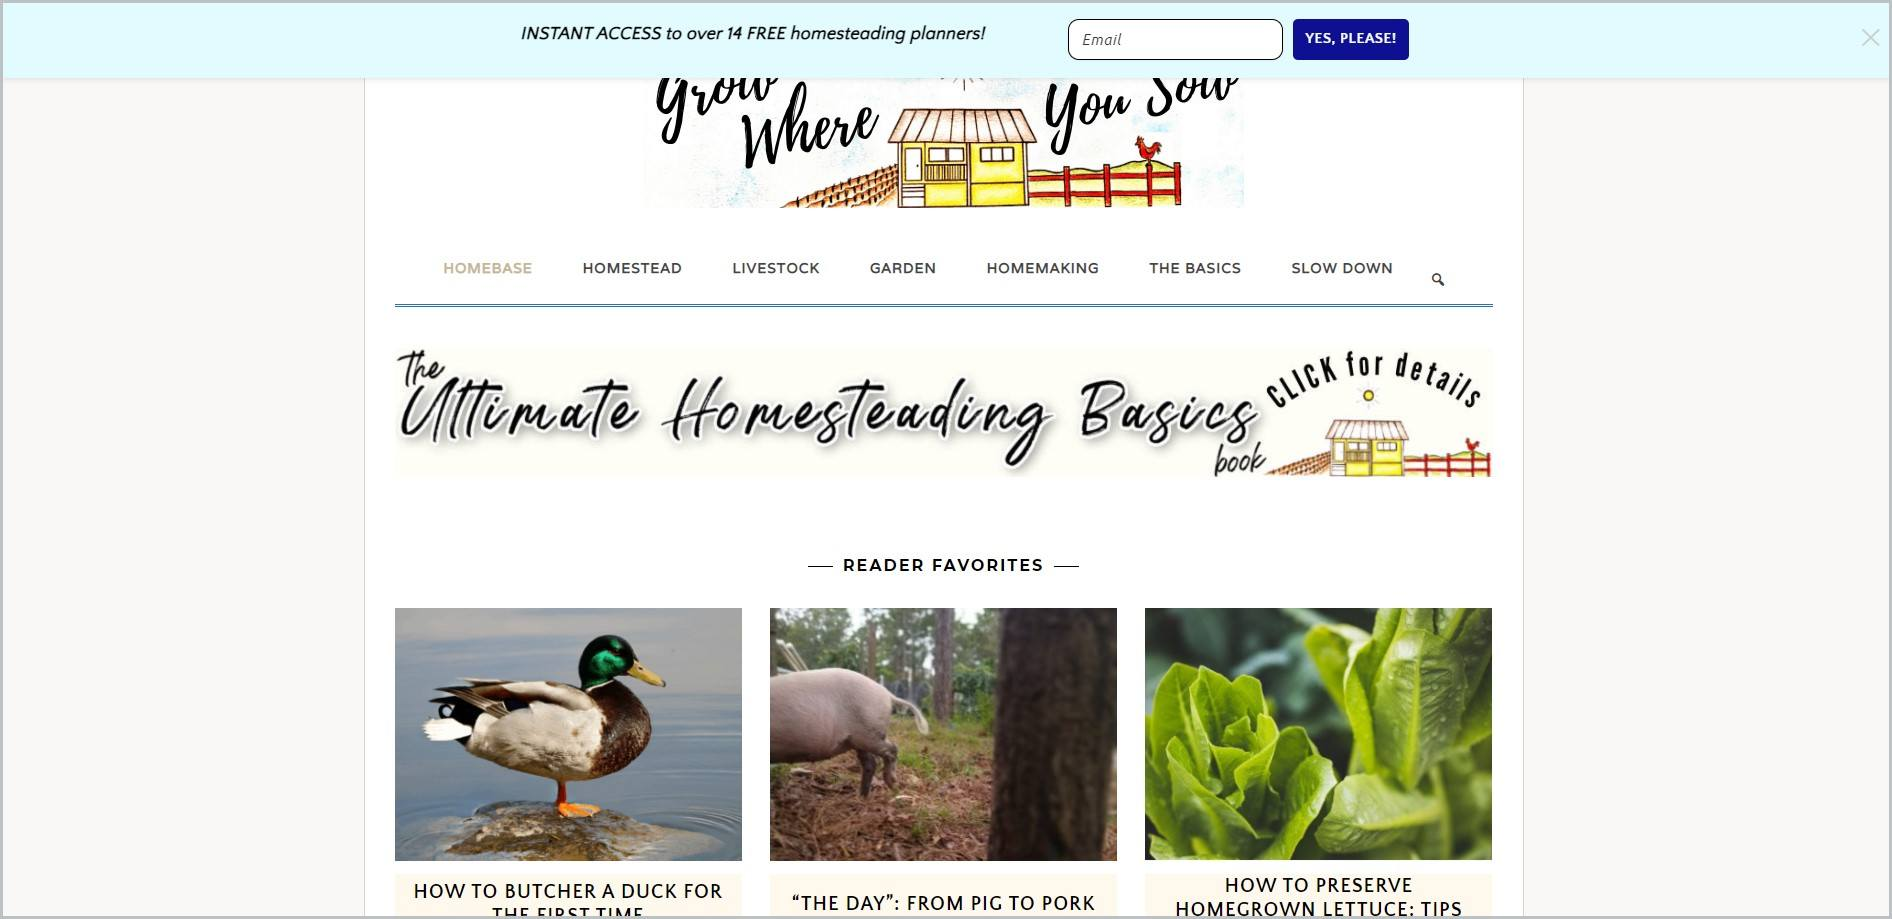 screenshot of Grow Where You Sow homepage with sky blue announcement bar, white header with the website's name and logo and main navigation menu